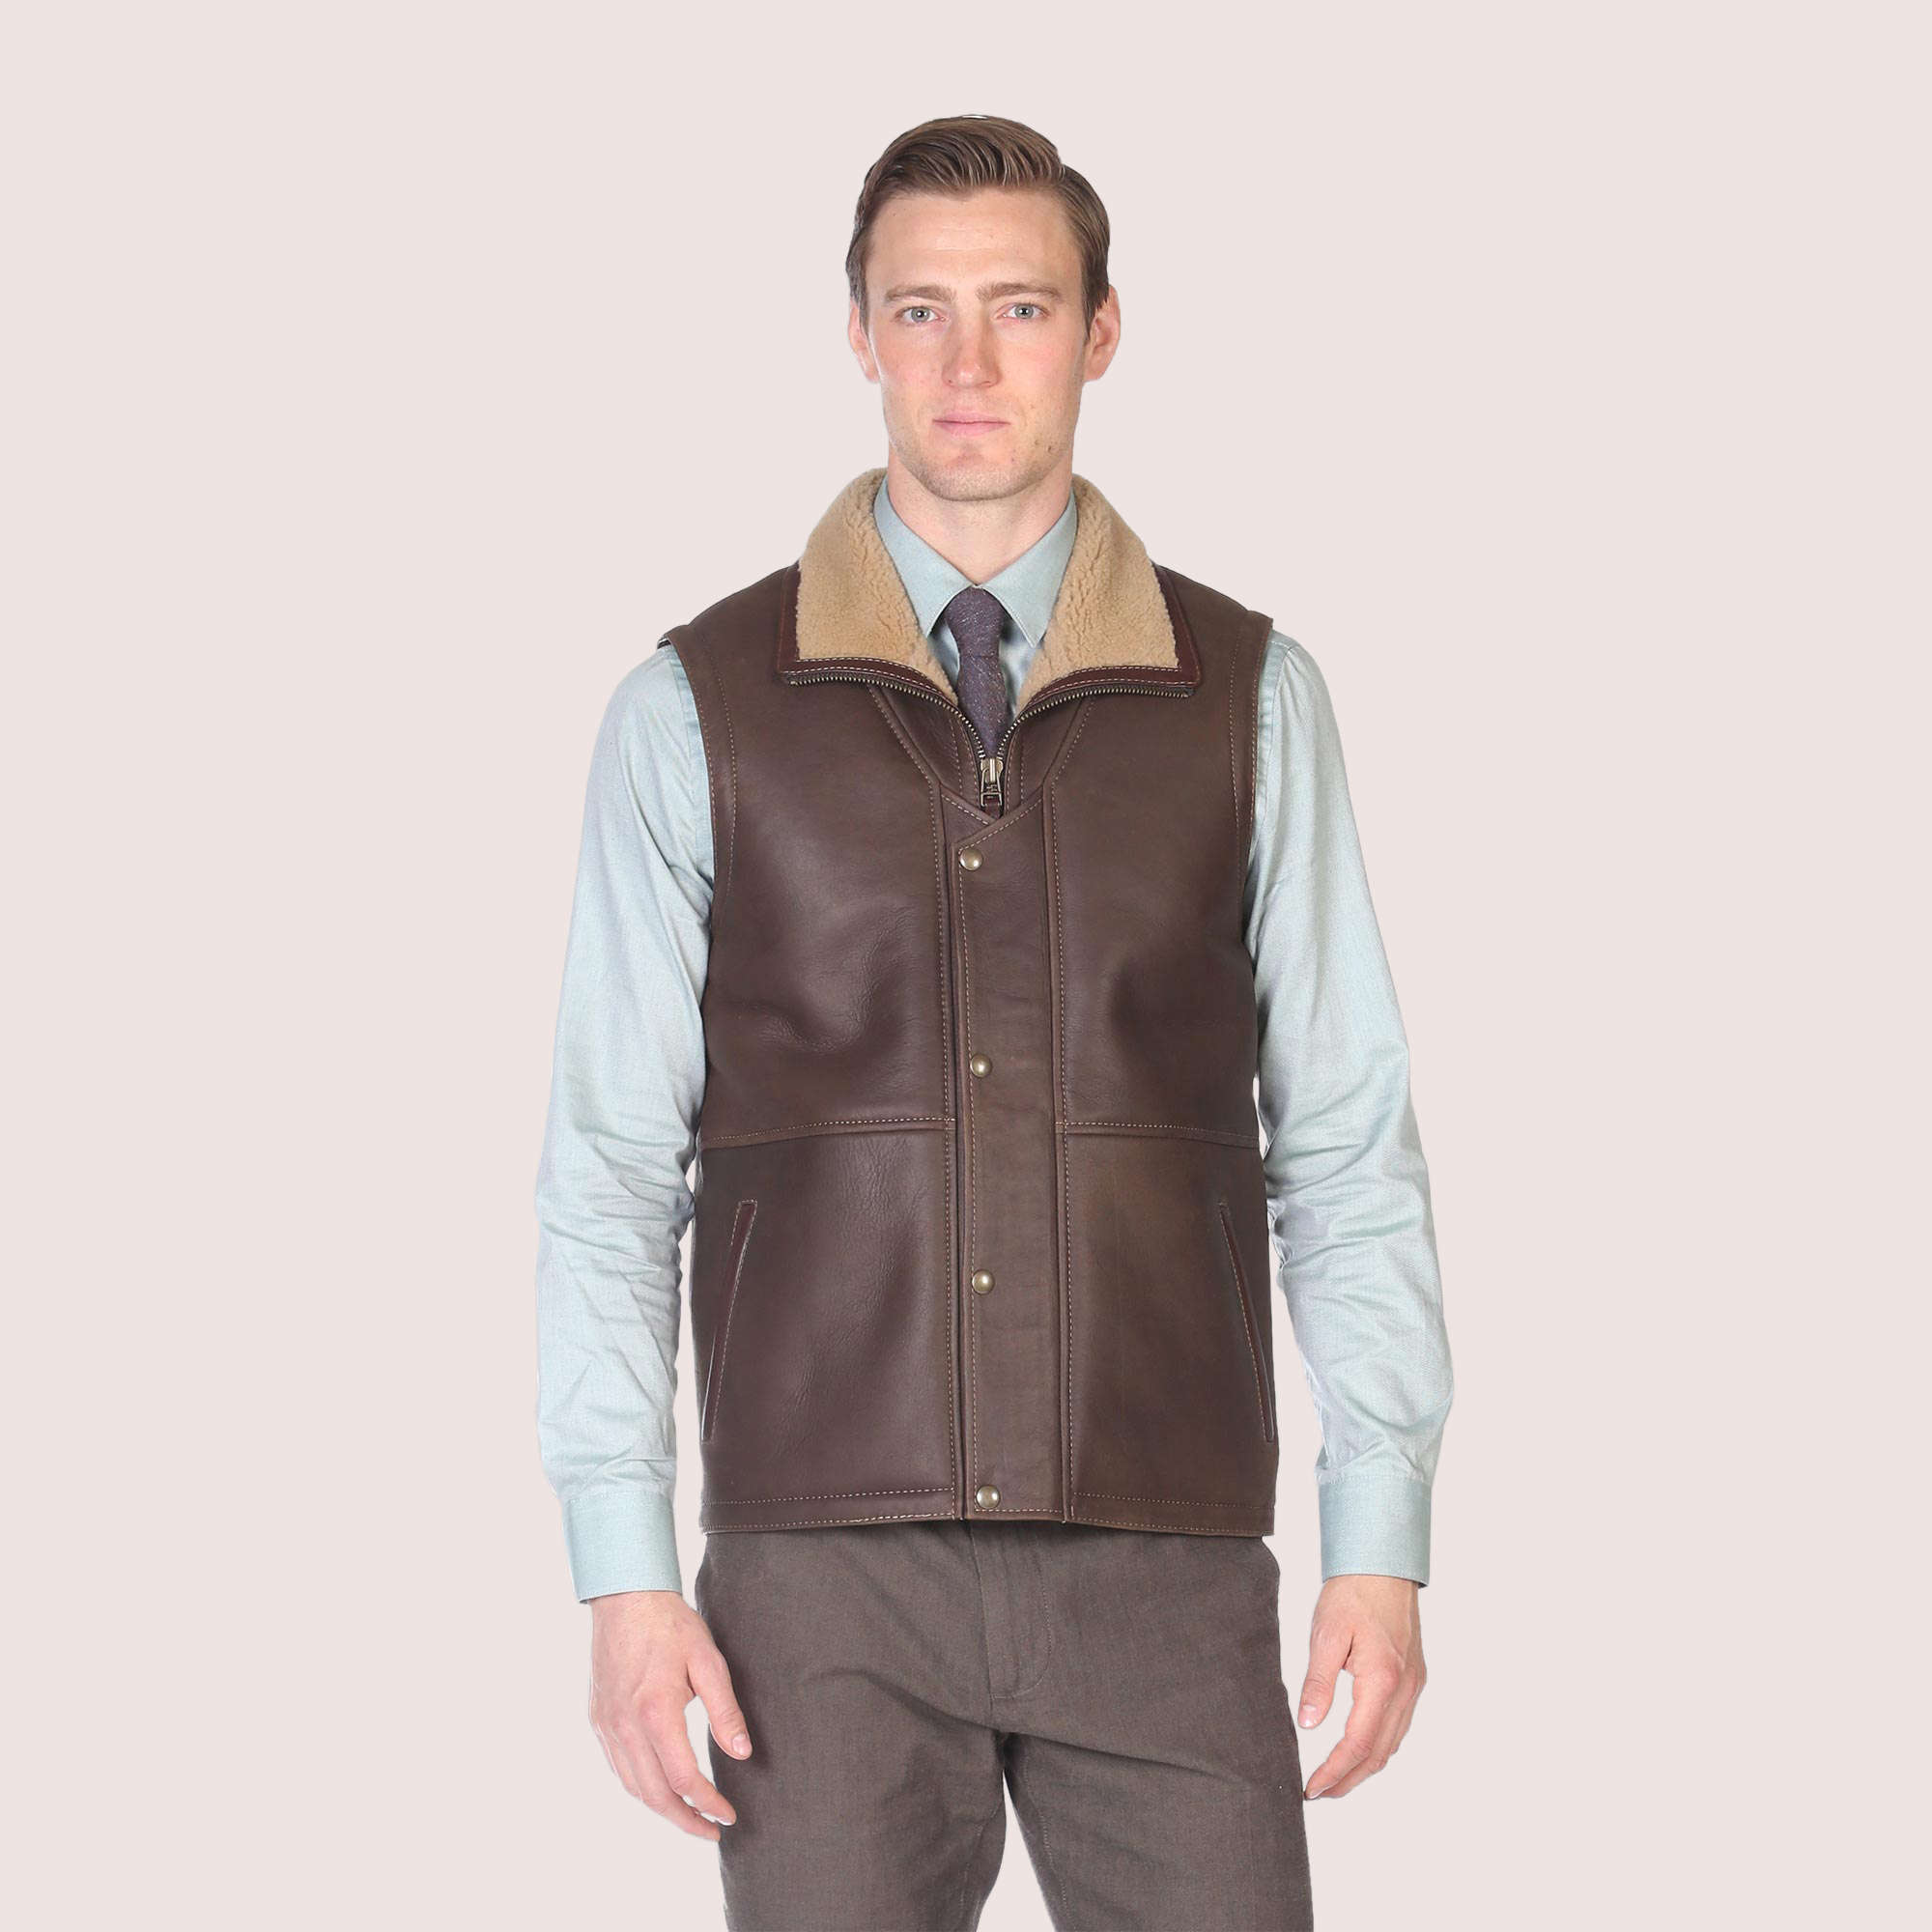 Cheshire Shearling Vest